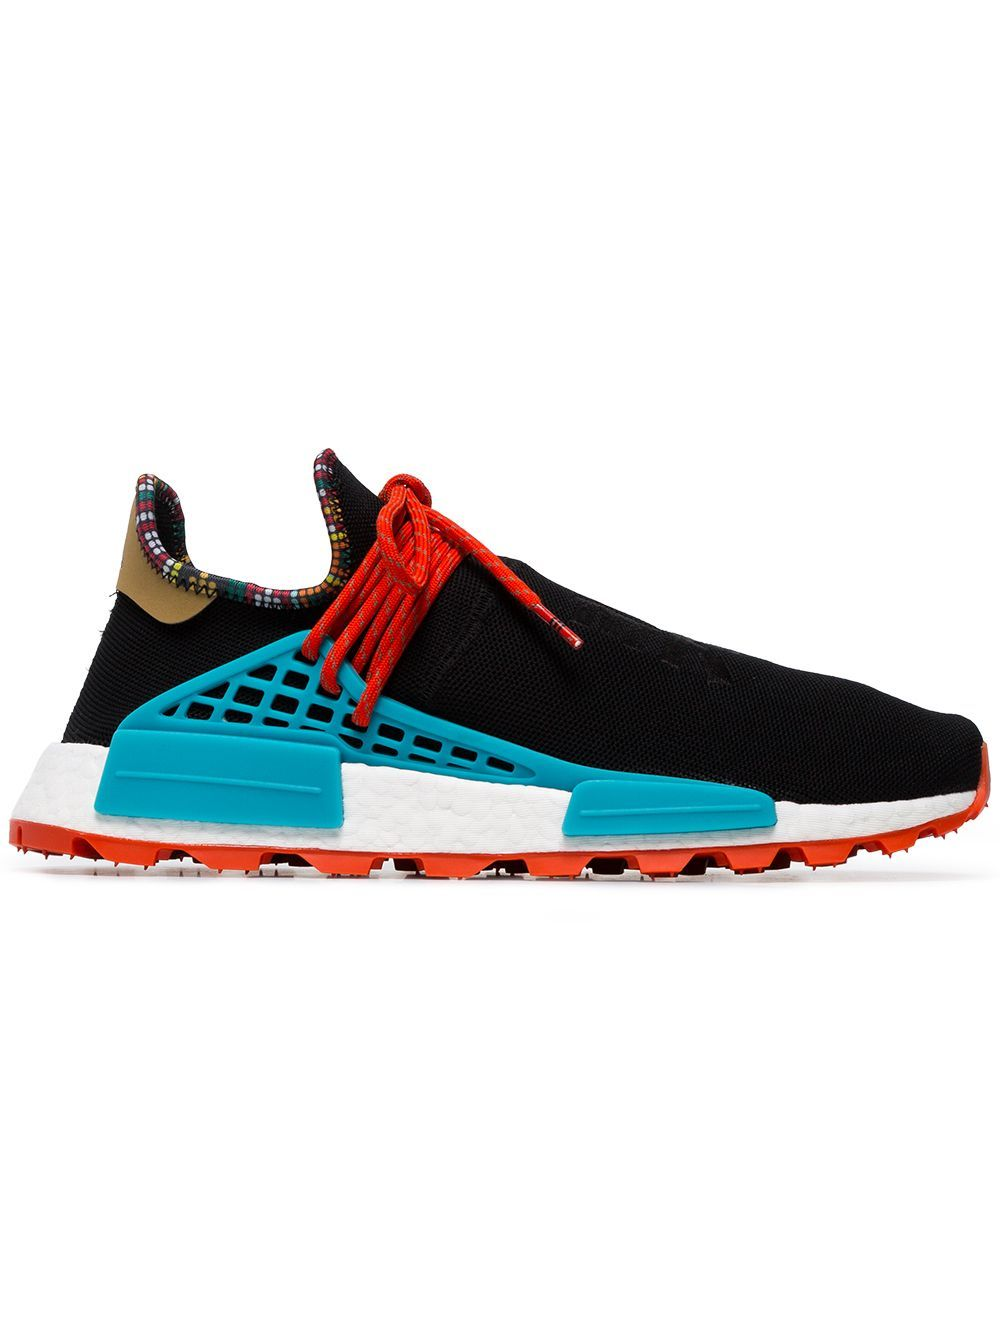 180583408 ADIDAS ORIGINALS ADIDAS X PHARRELL WILLIAMS BLACK HUMAN BODY NMD SNEAKERS -  黑色.  adidasoriginals  shoes